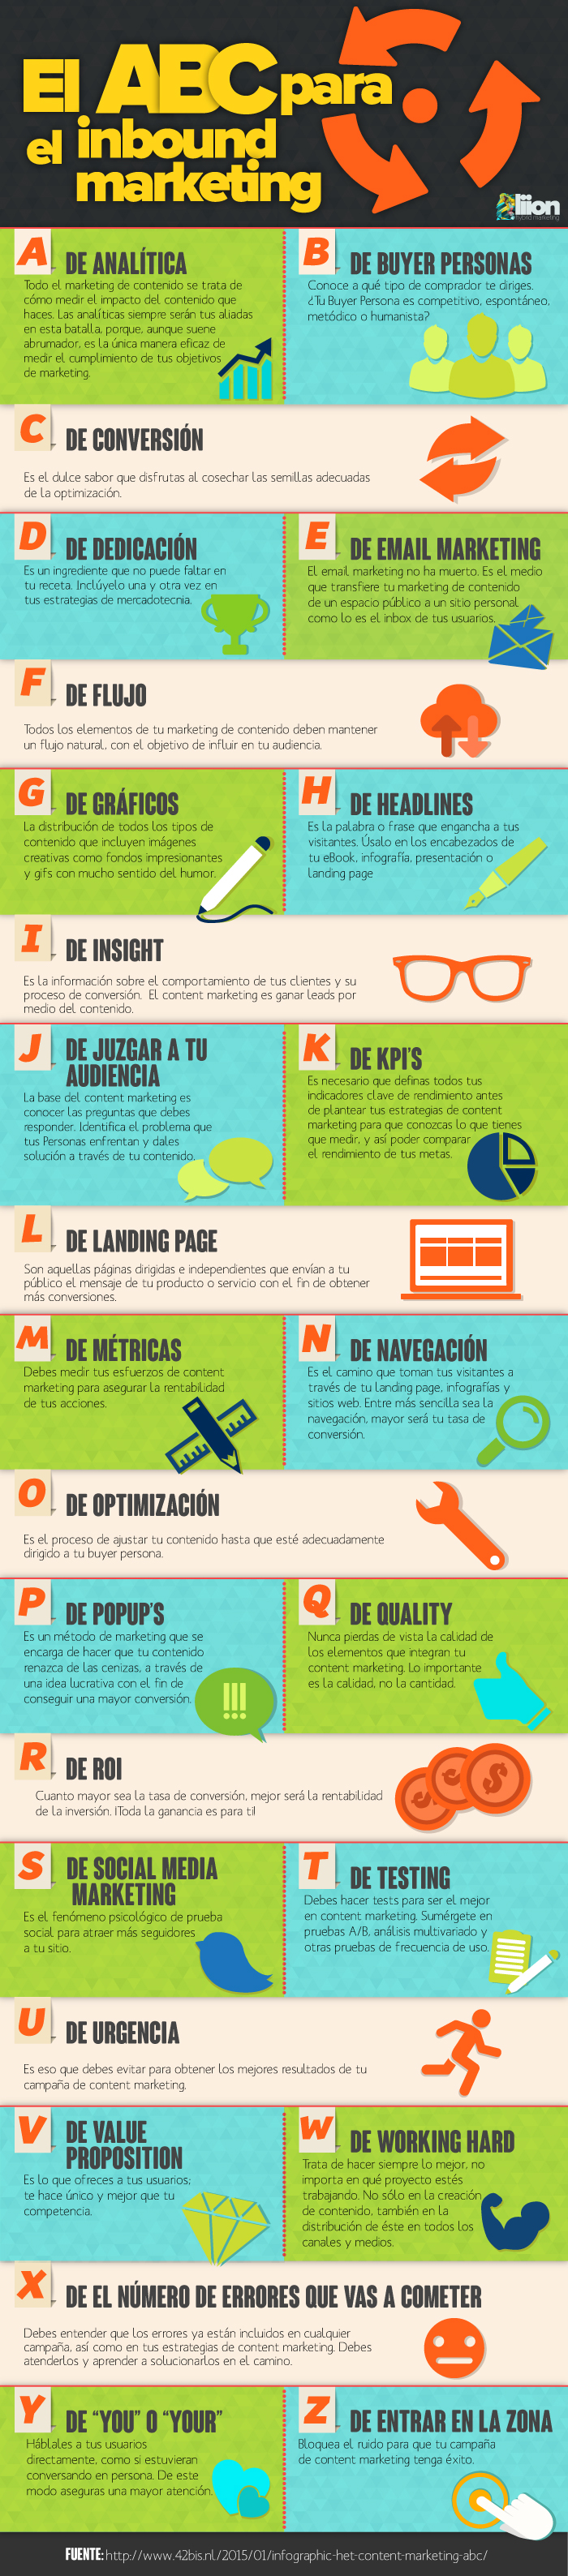 El ABC para el Inbound Marketing